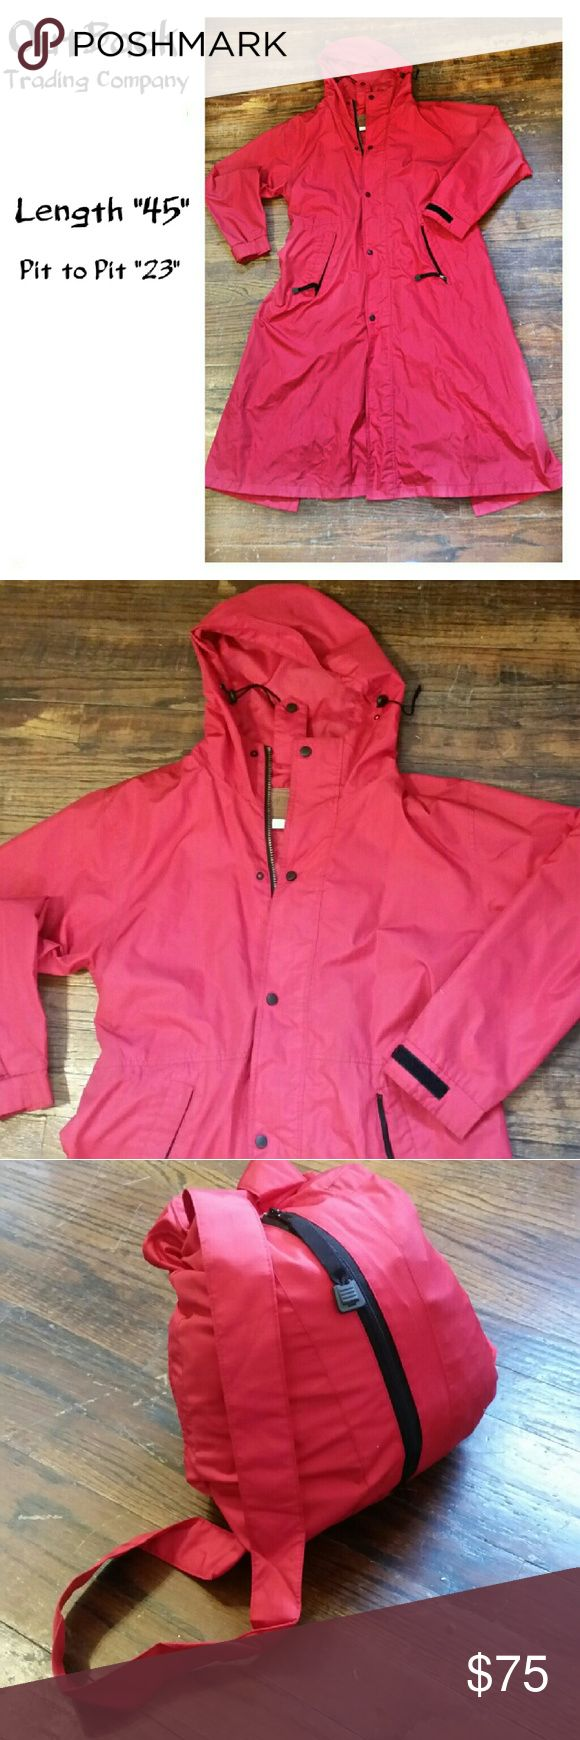 1-HOUR SALEOutBack trading Company Mens Pak A Roo Perfect used condition. Normal wear dirt along sleeves and pockets not visible unless close up. Submit offers. Will consider these cost 115 new. outback Trading company Jackets & Coats Trench Coats